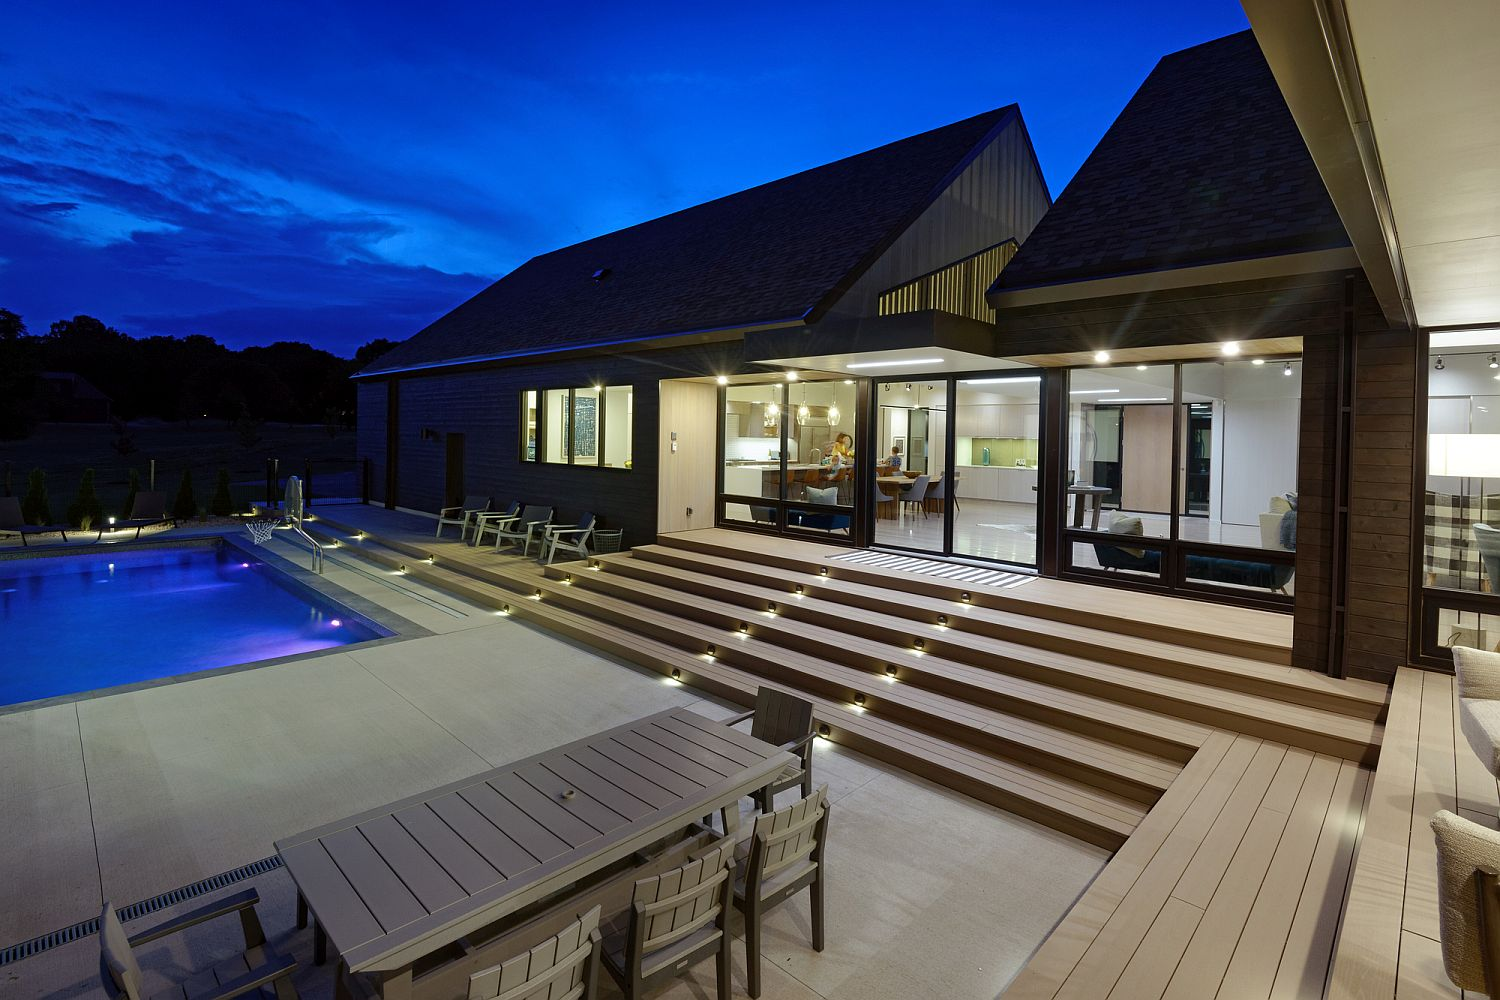 Central pool are and courtyard that the family can enjoy